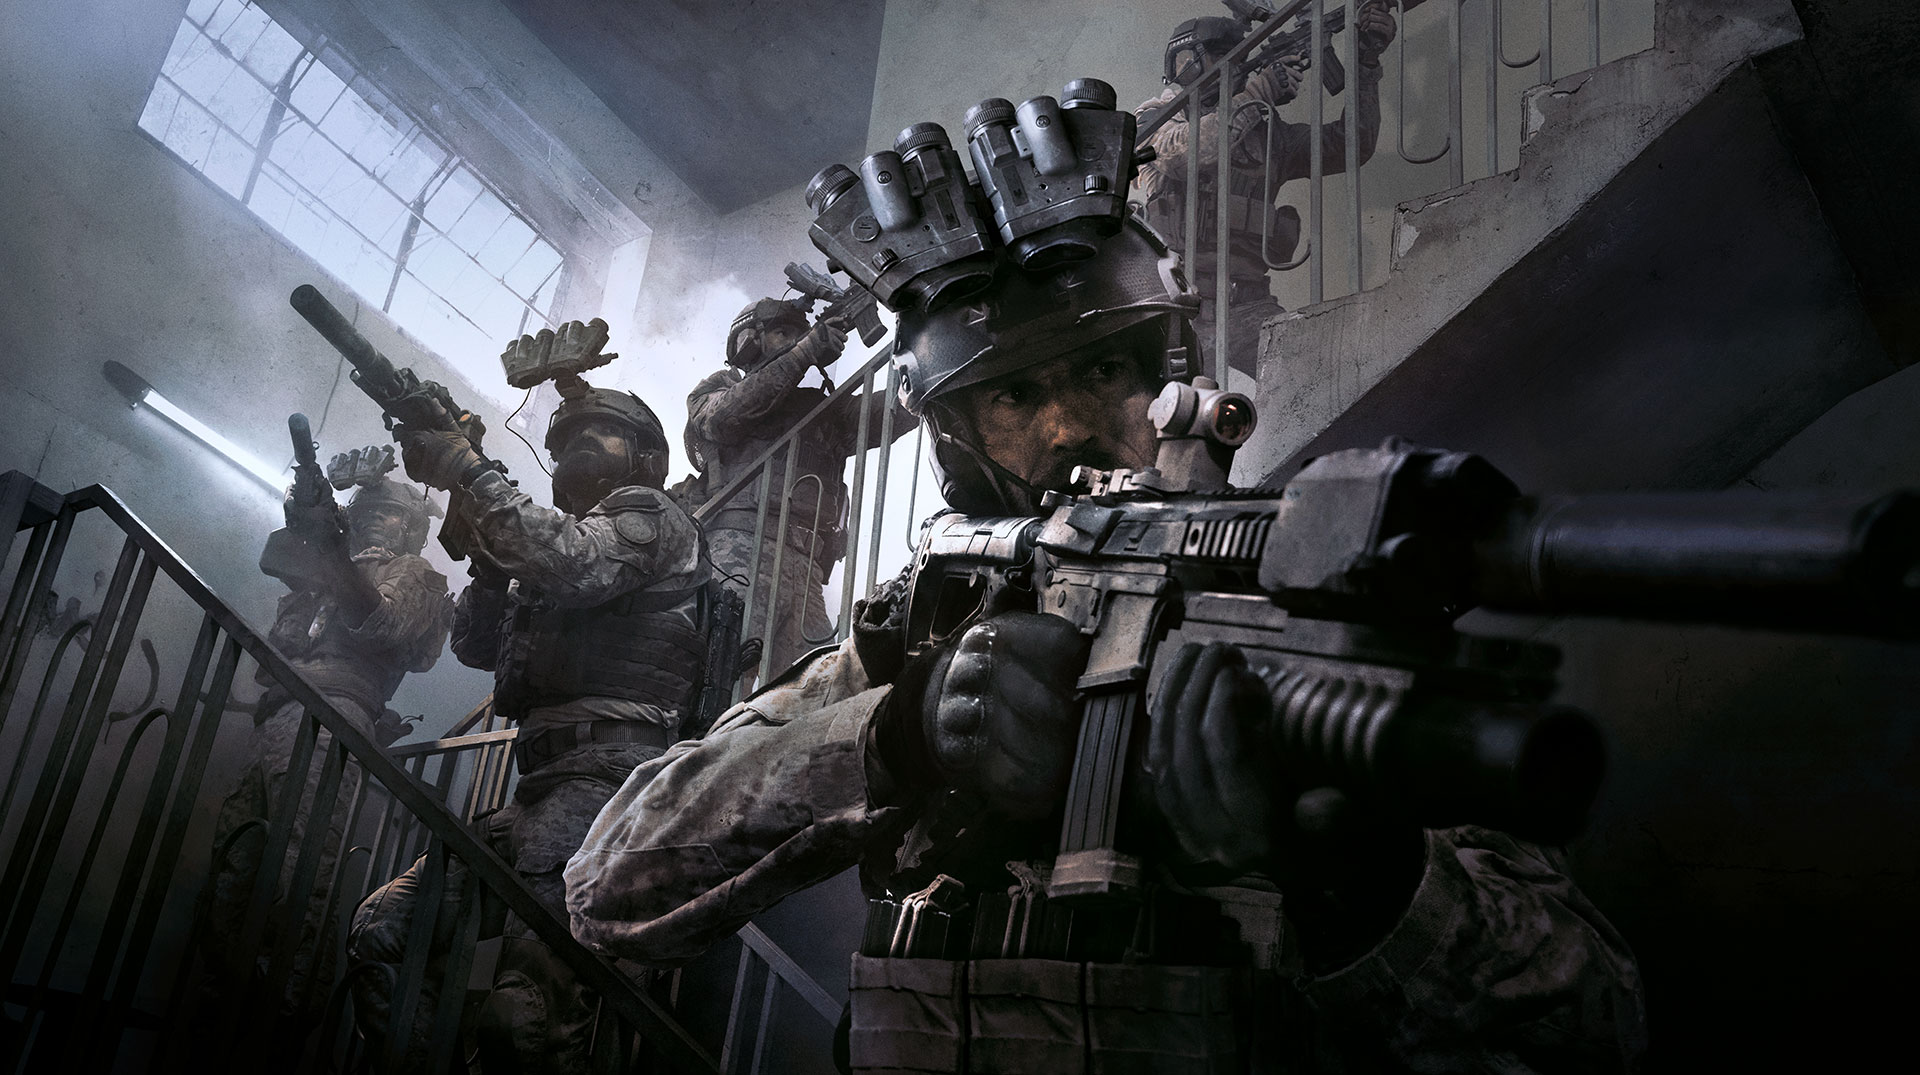 Call of duty multiplayer nightvision